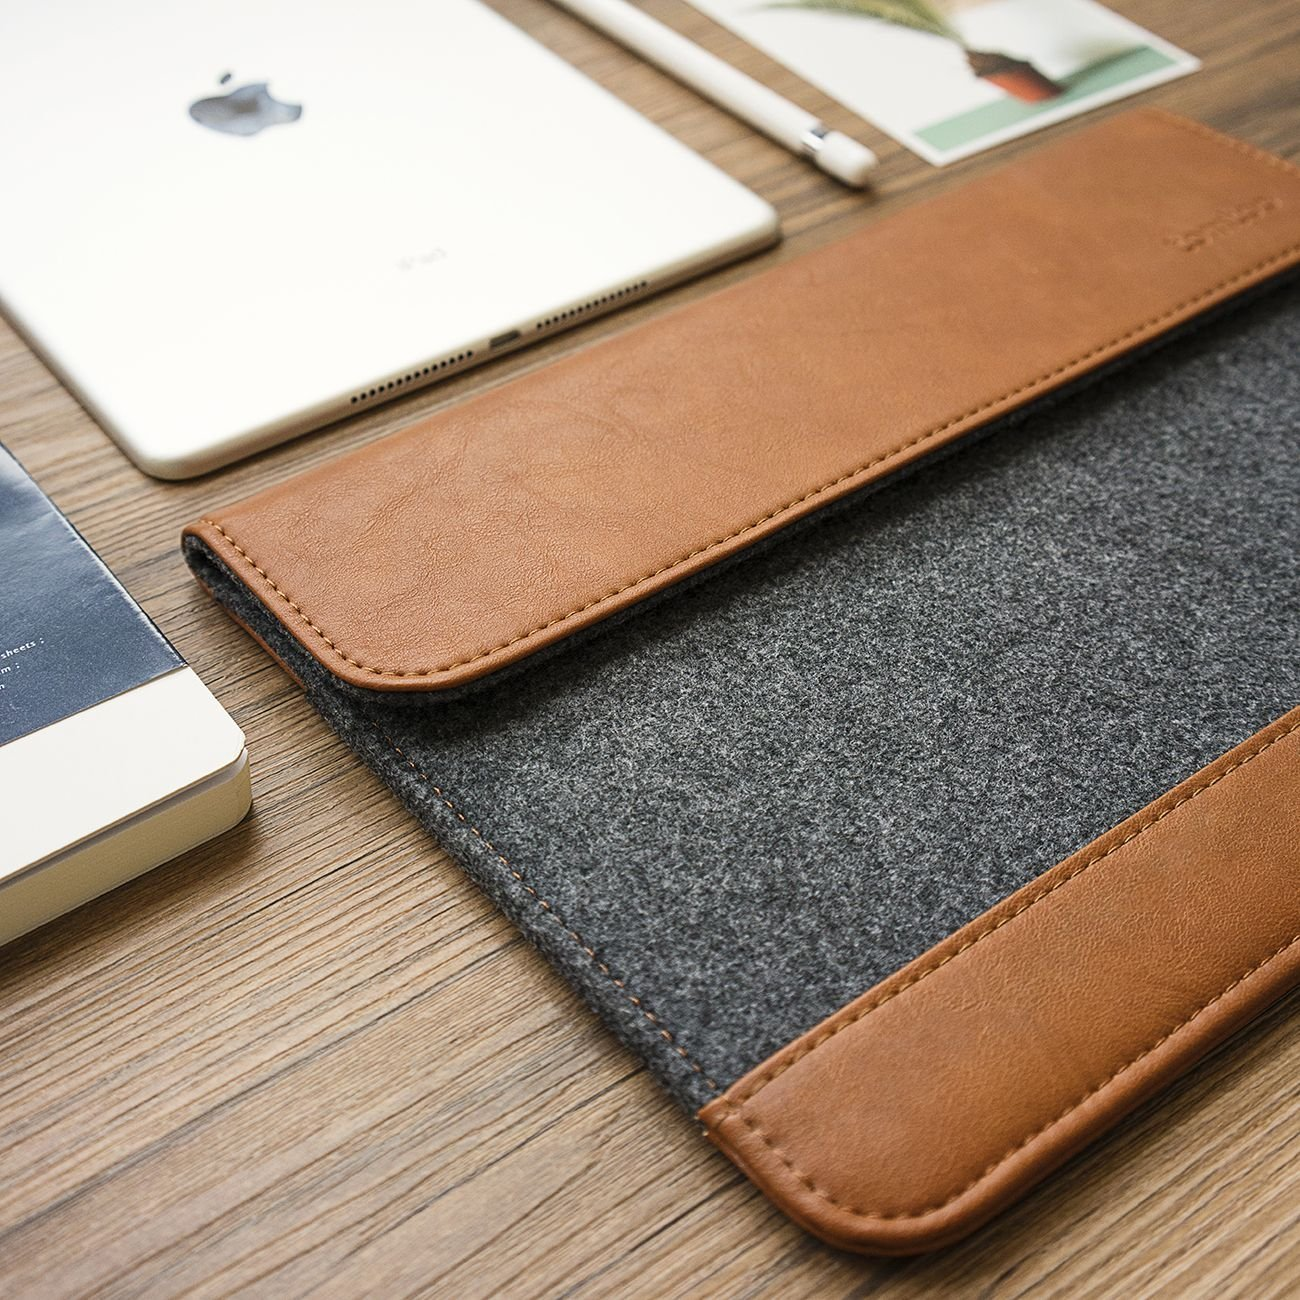 Tomtoc Ultra Slim Tablet Sleeve